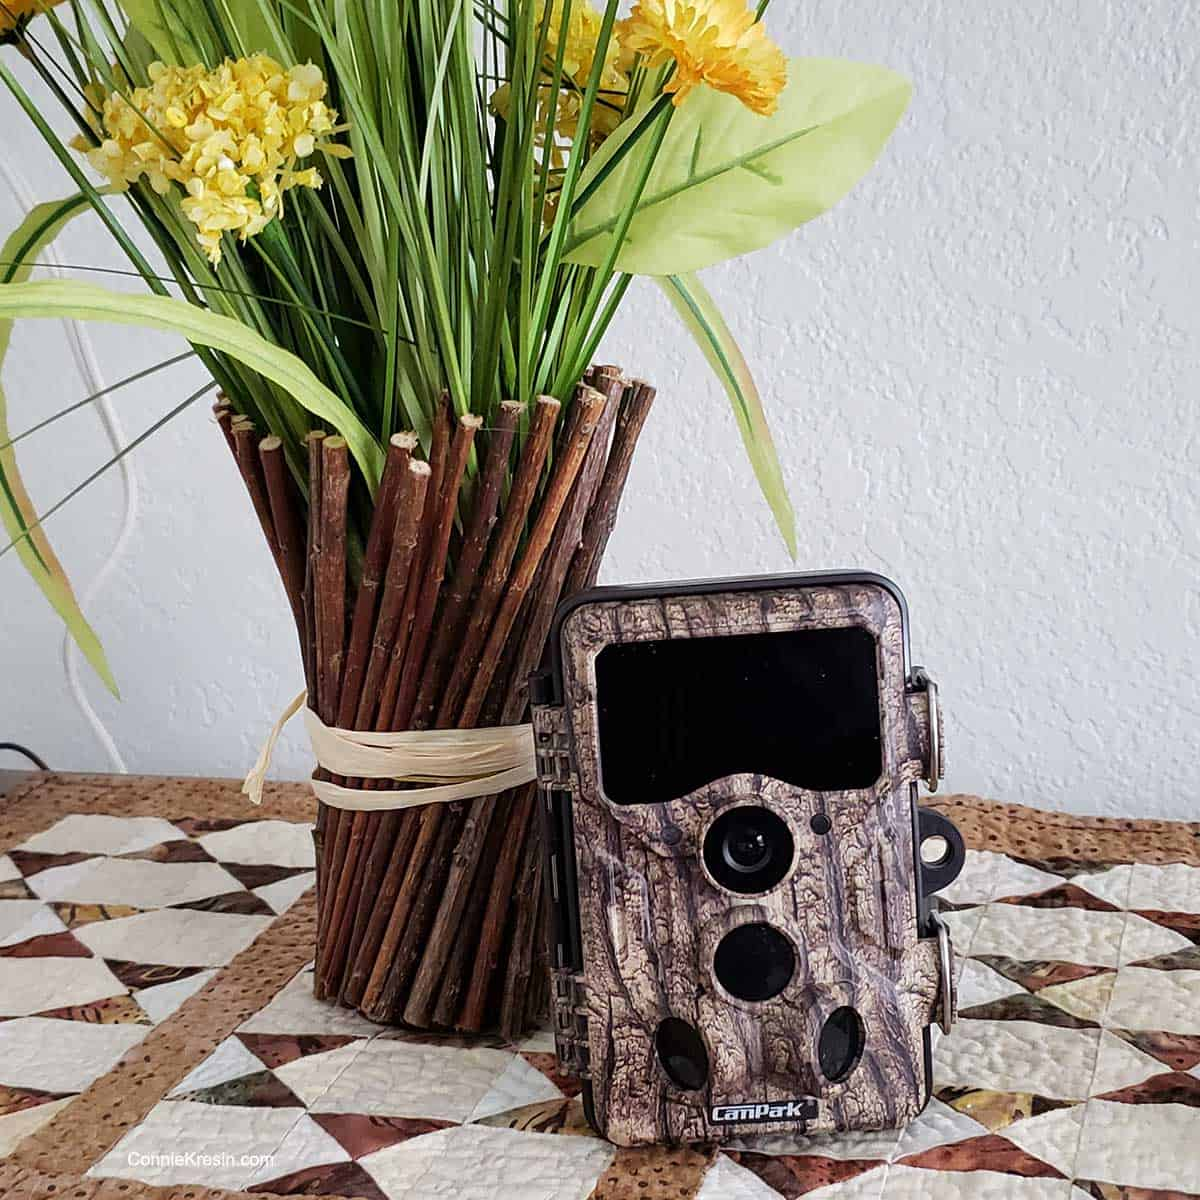 T86 Campark Trail Camera